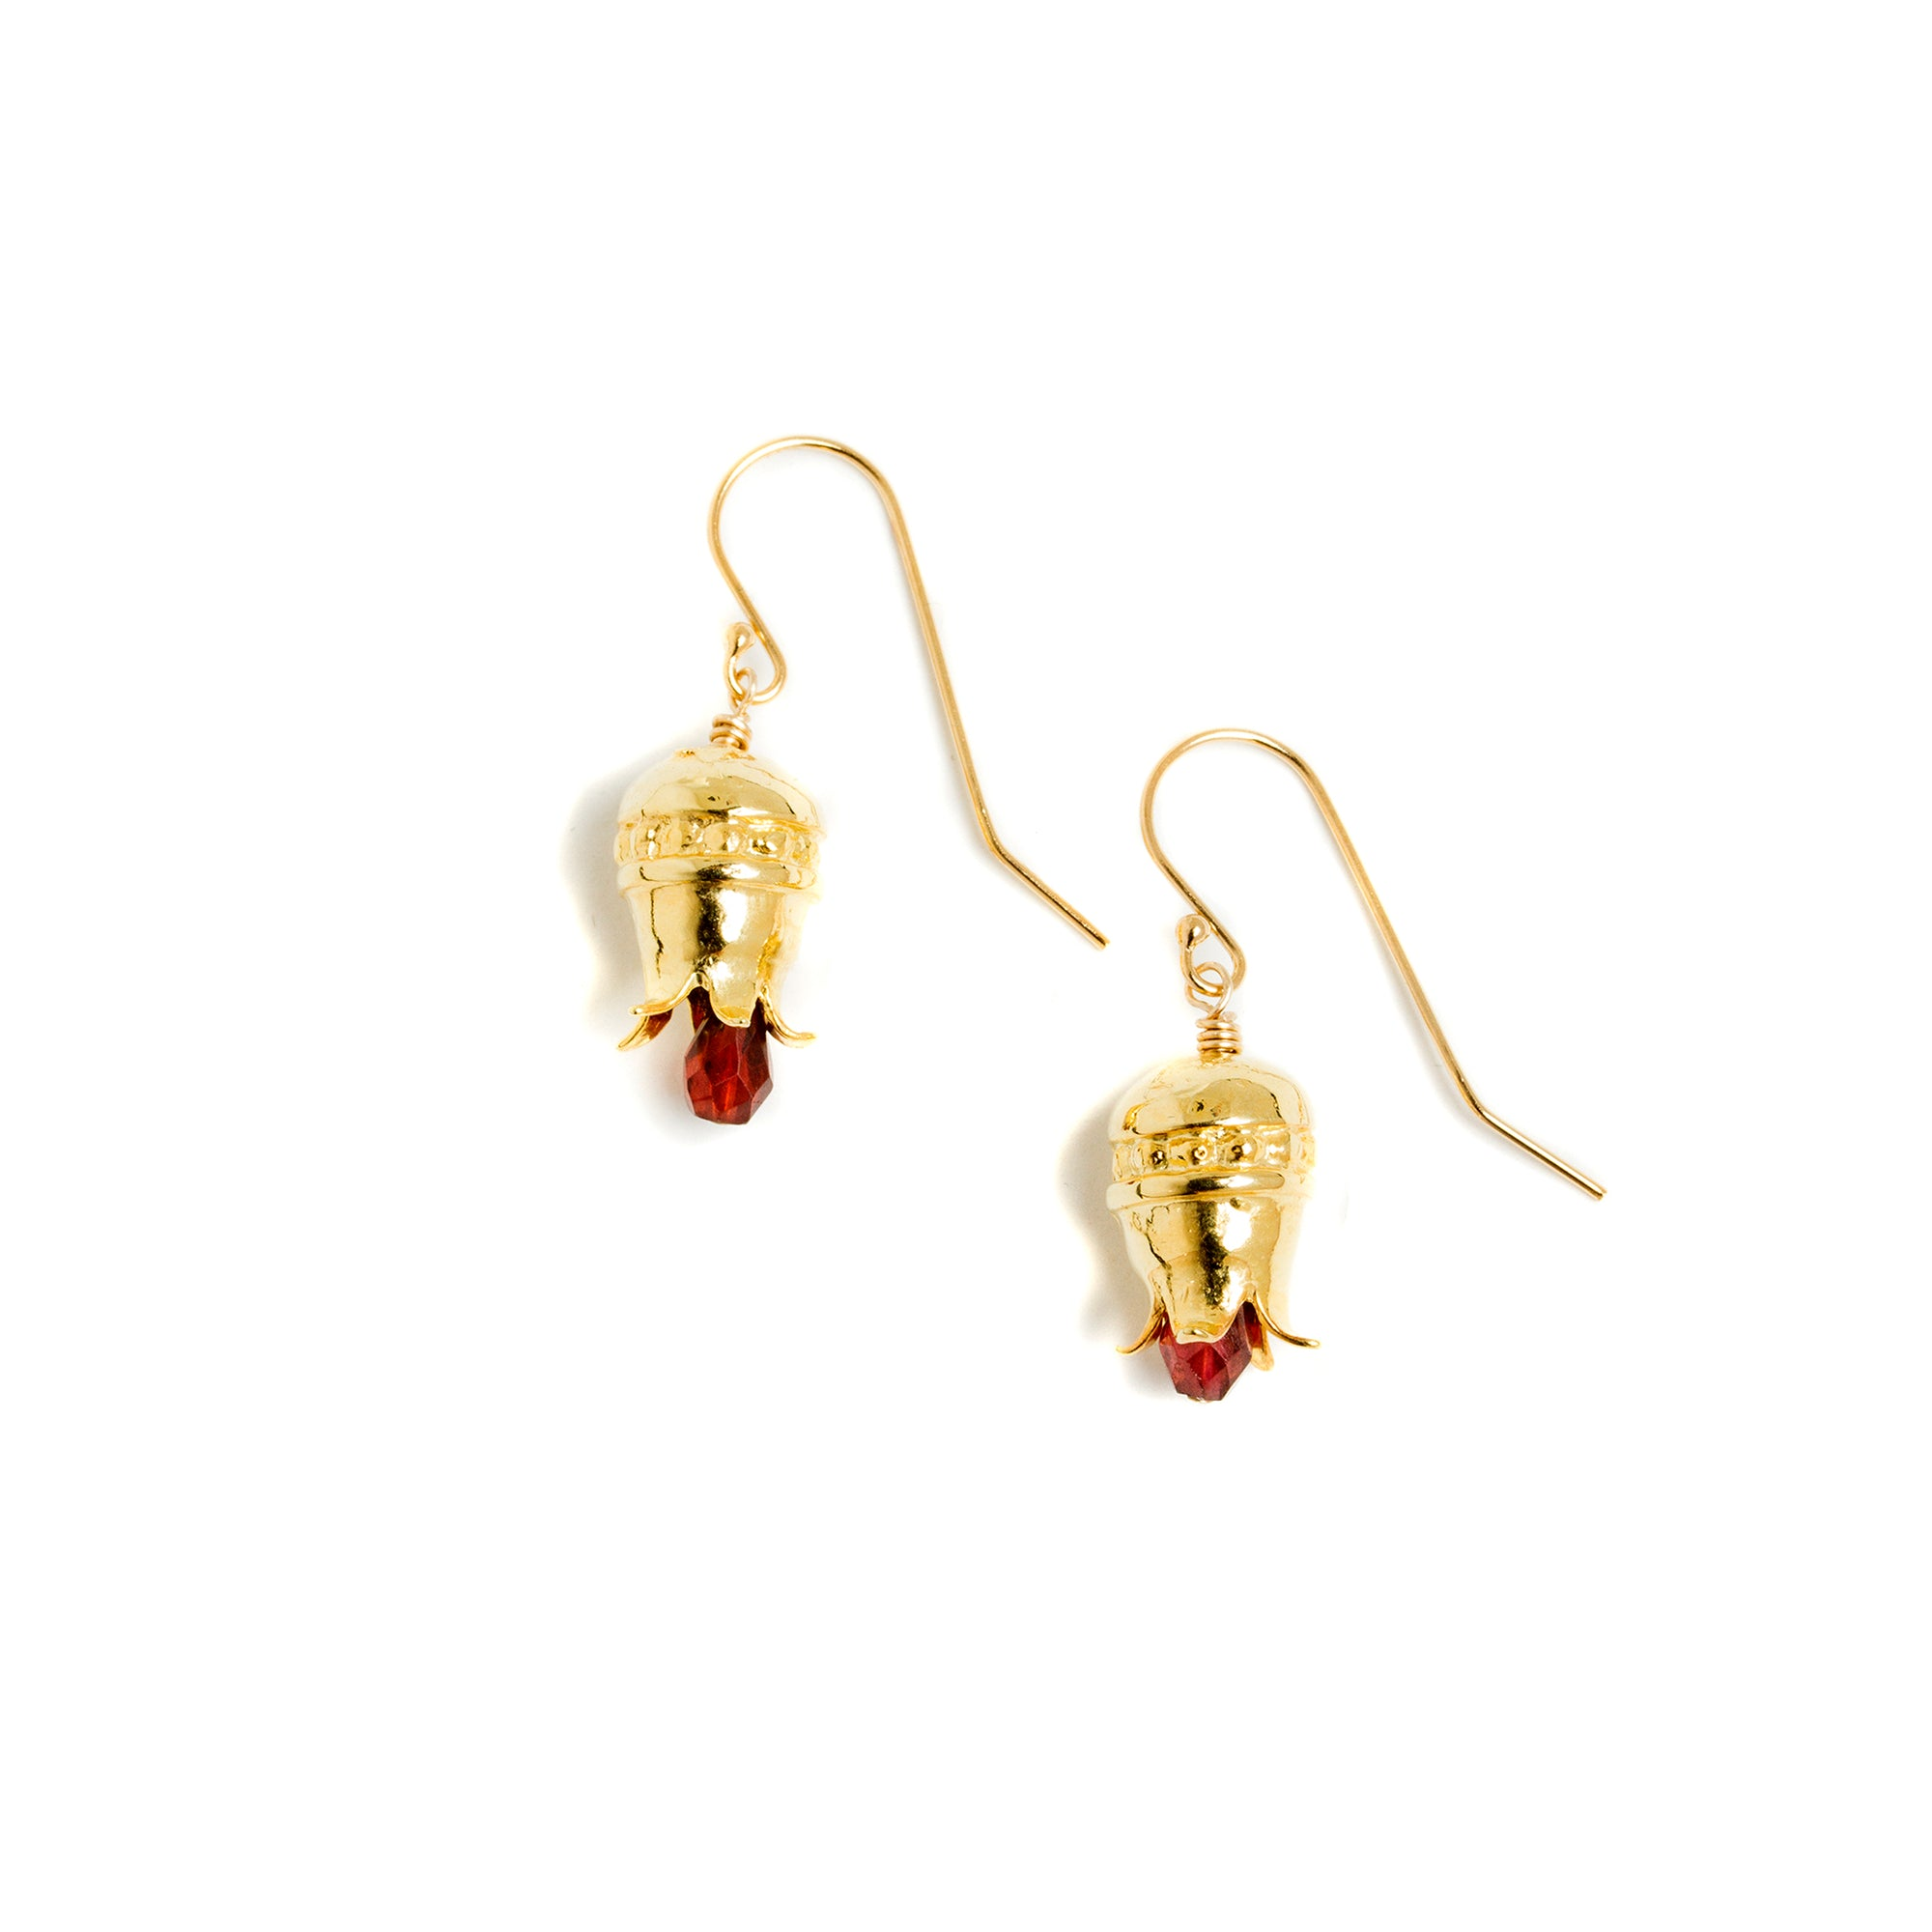 Pomegranate Earrings with Drop Garnets - Gold-Plated